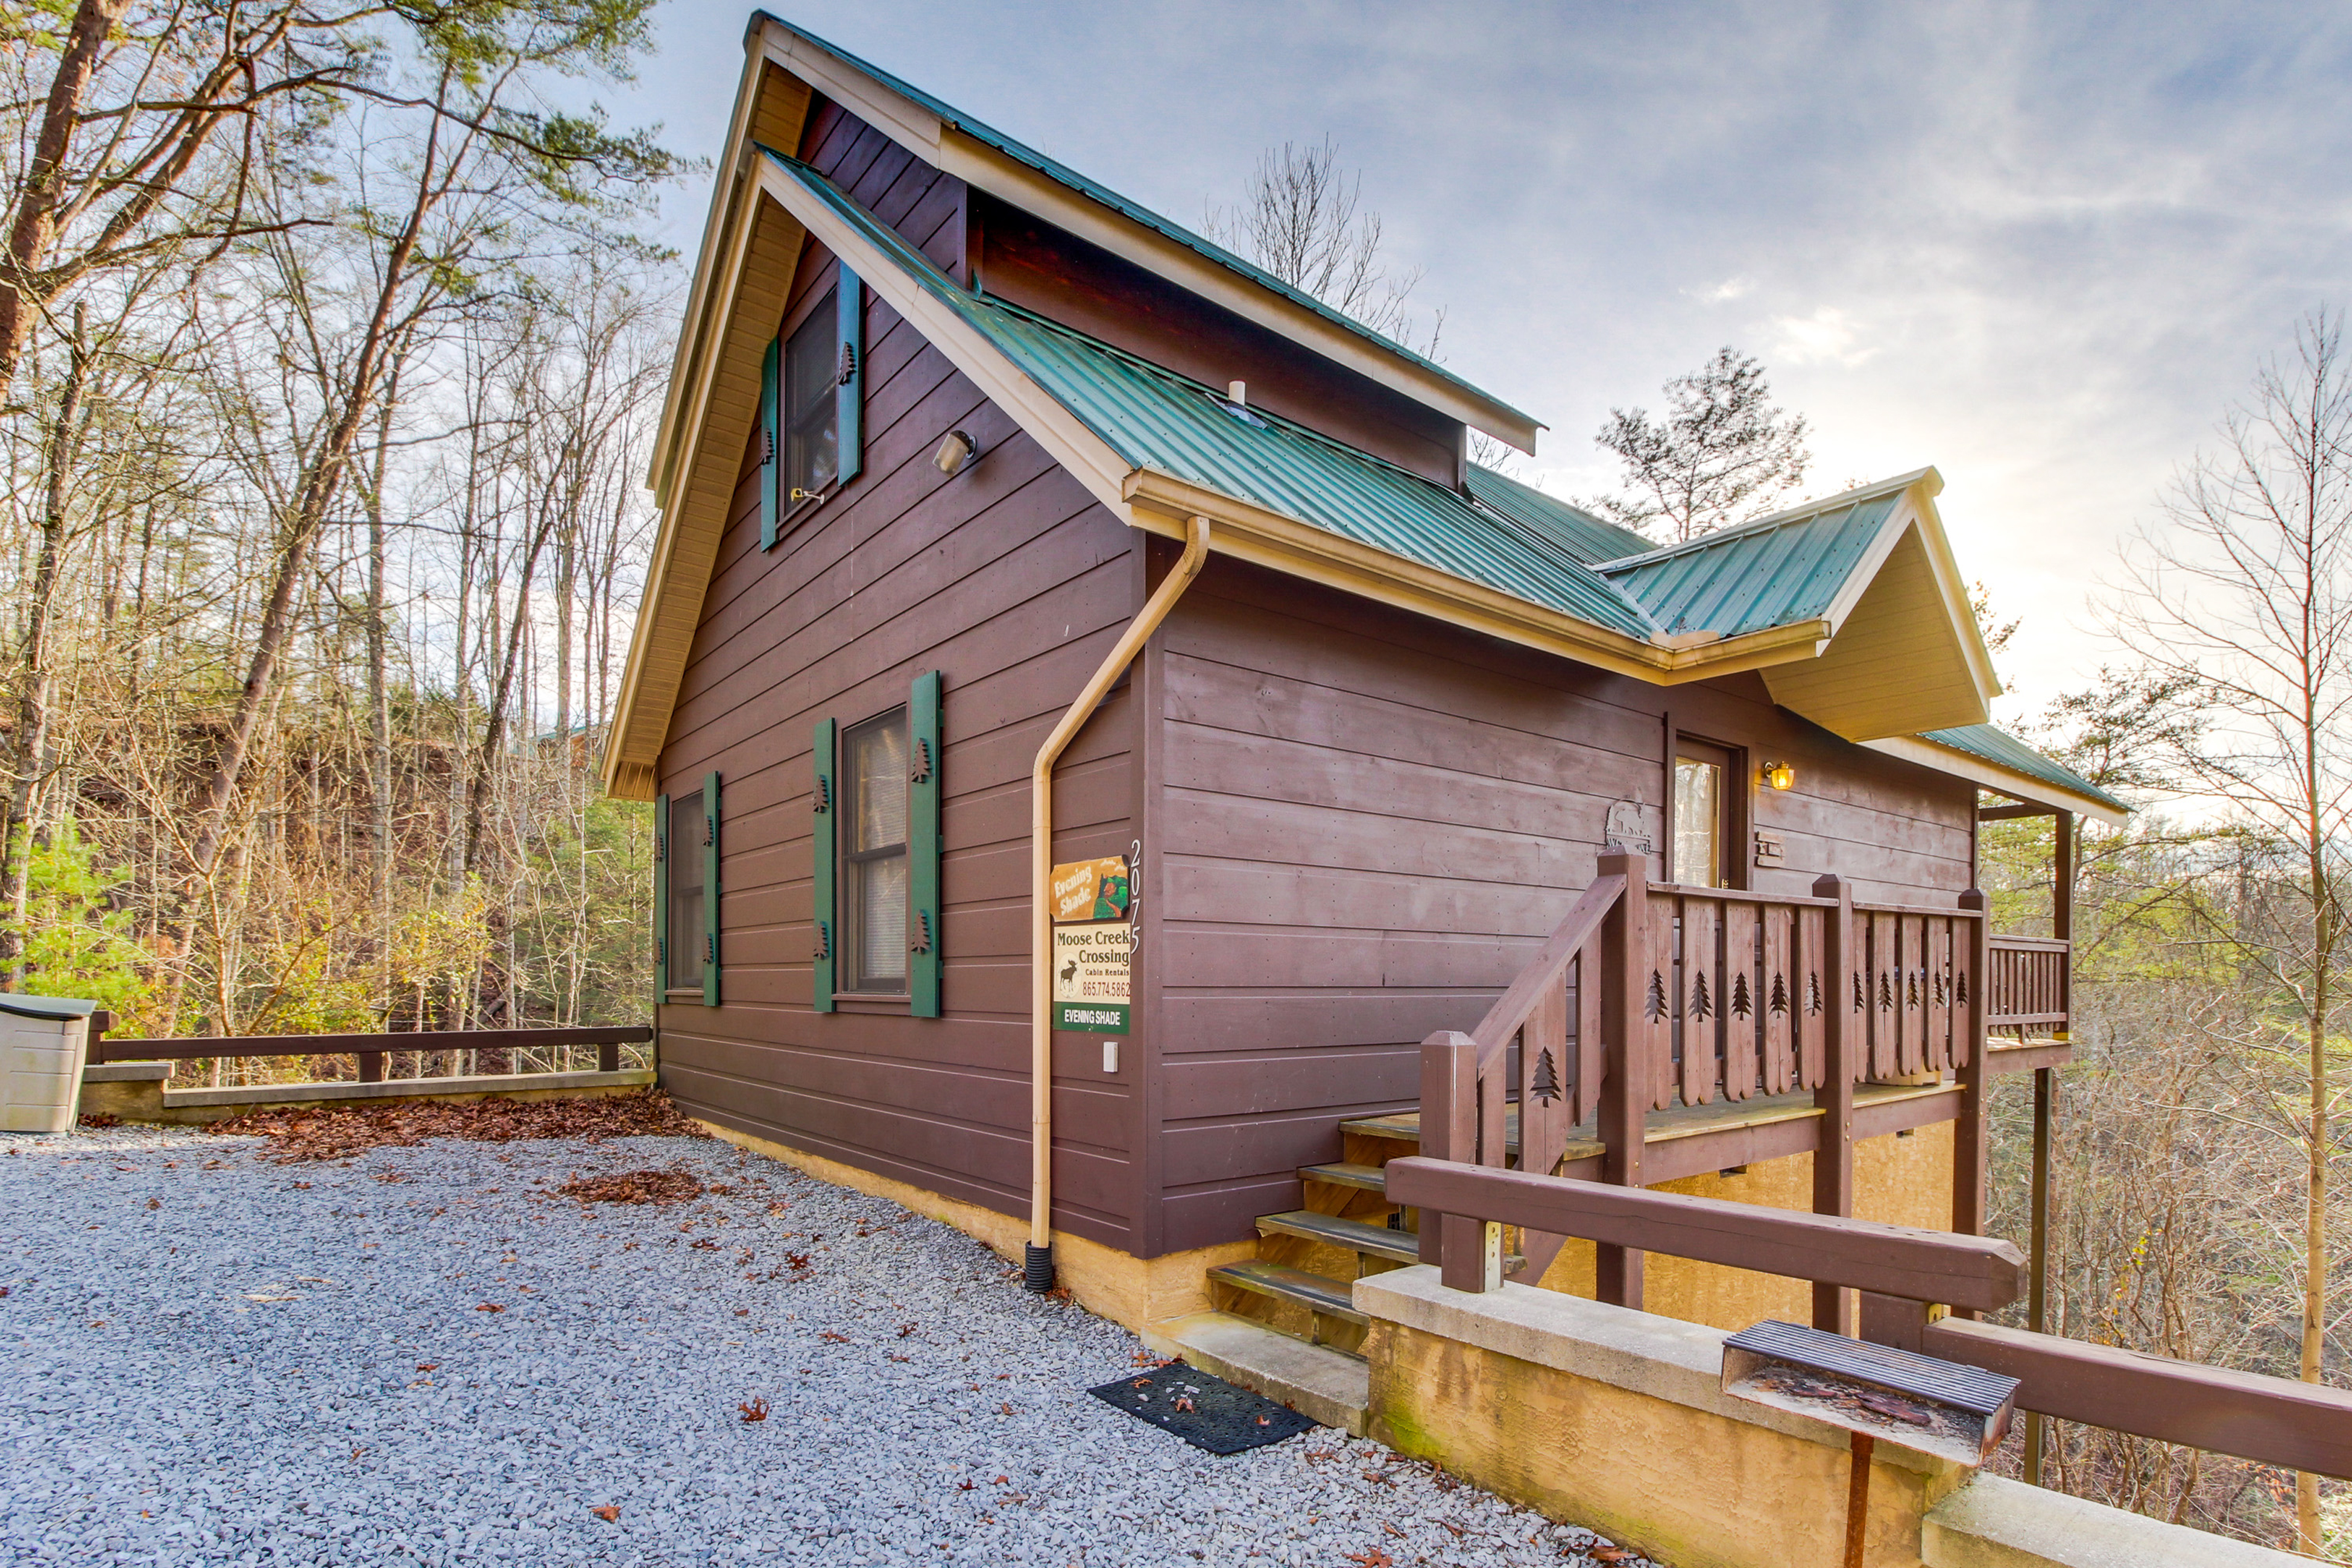 cabins pet a pigeon log cleaning fees tn luxury under forge in cabin night rentals friendly no gatlburg s